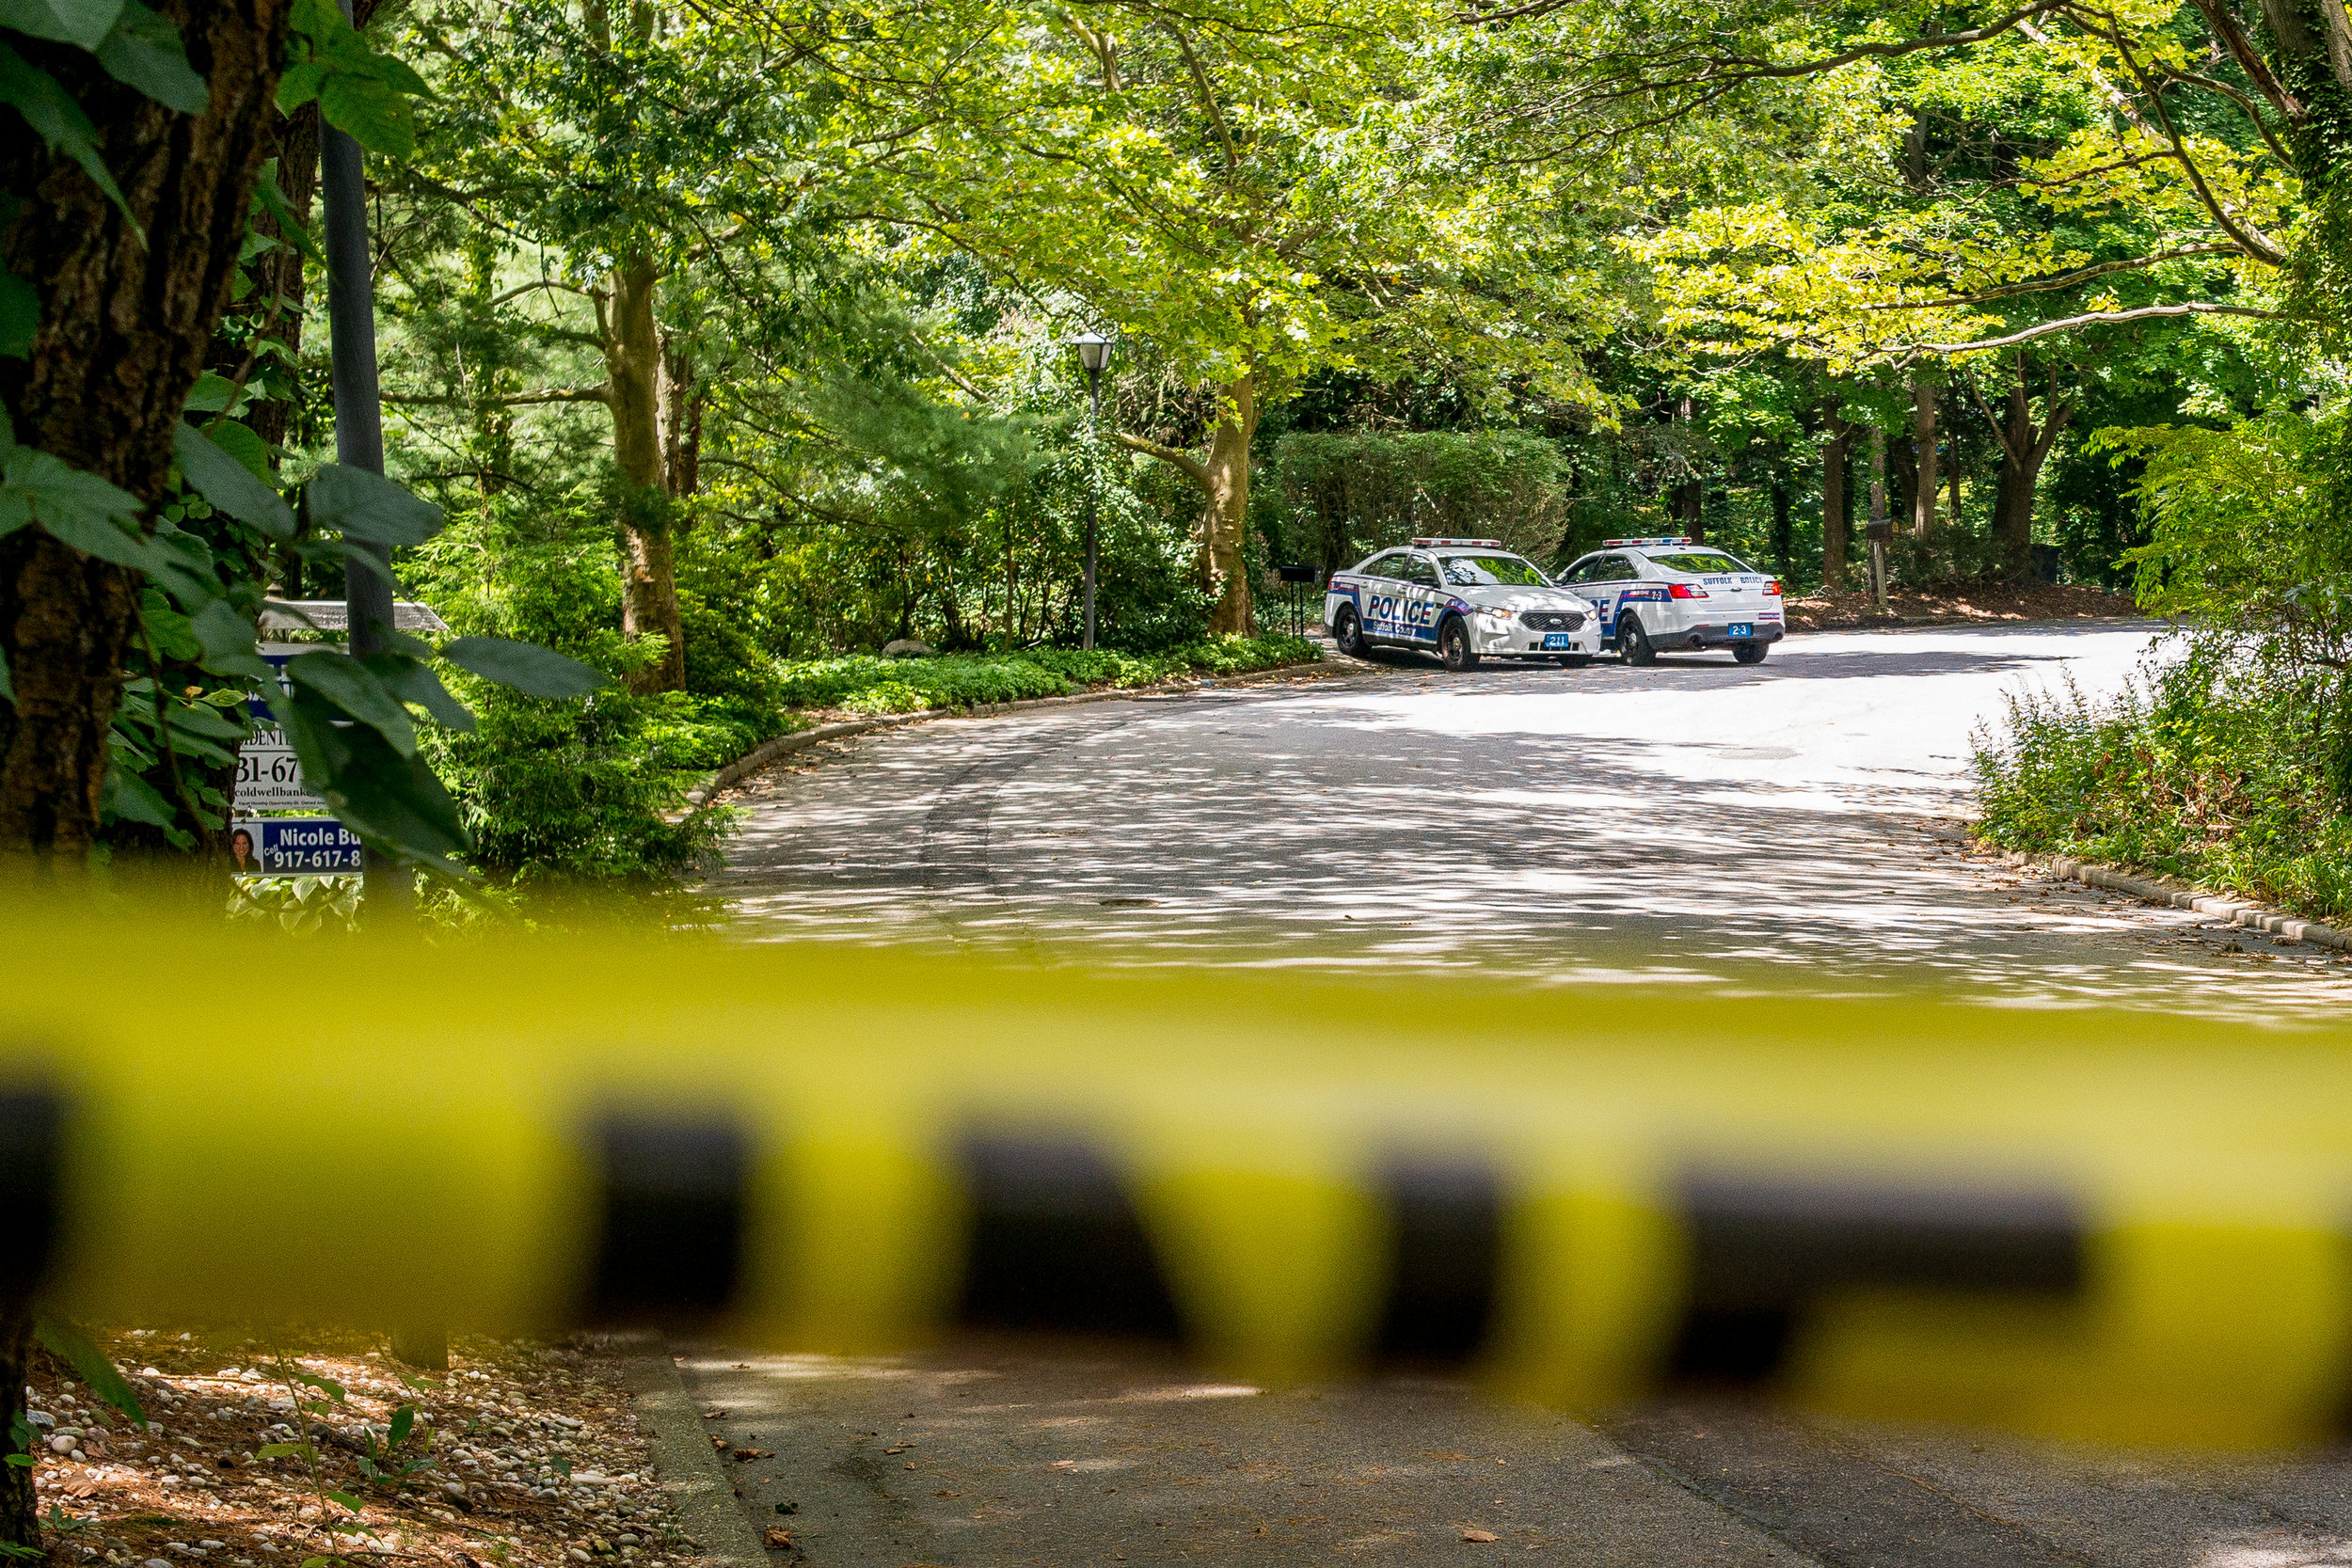 Police cruisers are pictured Wednesday morning on Holly Court in Melville after twin 3-year-old boys drowned in the backyard pool of a home on the street .  Long Islander News photo/Jano Tantongco